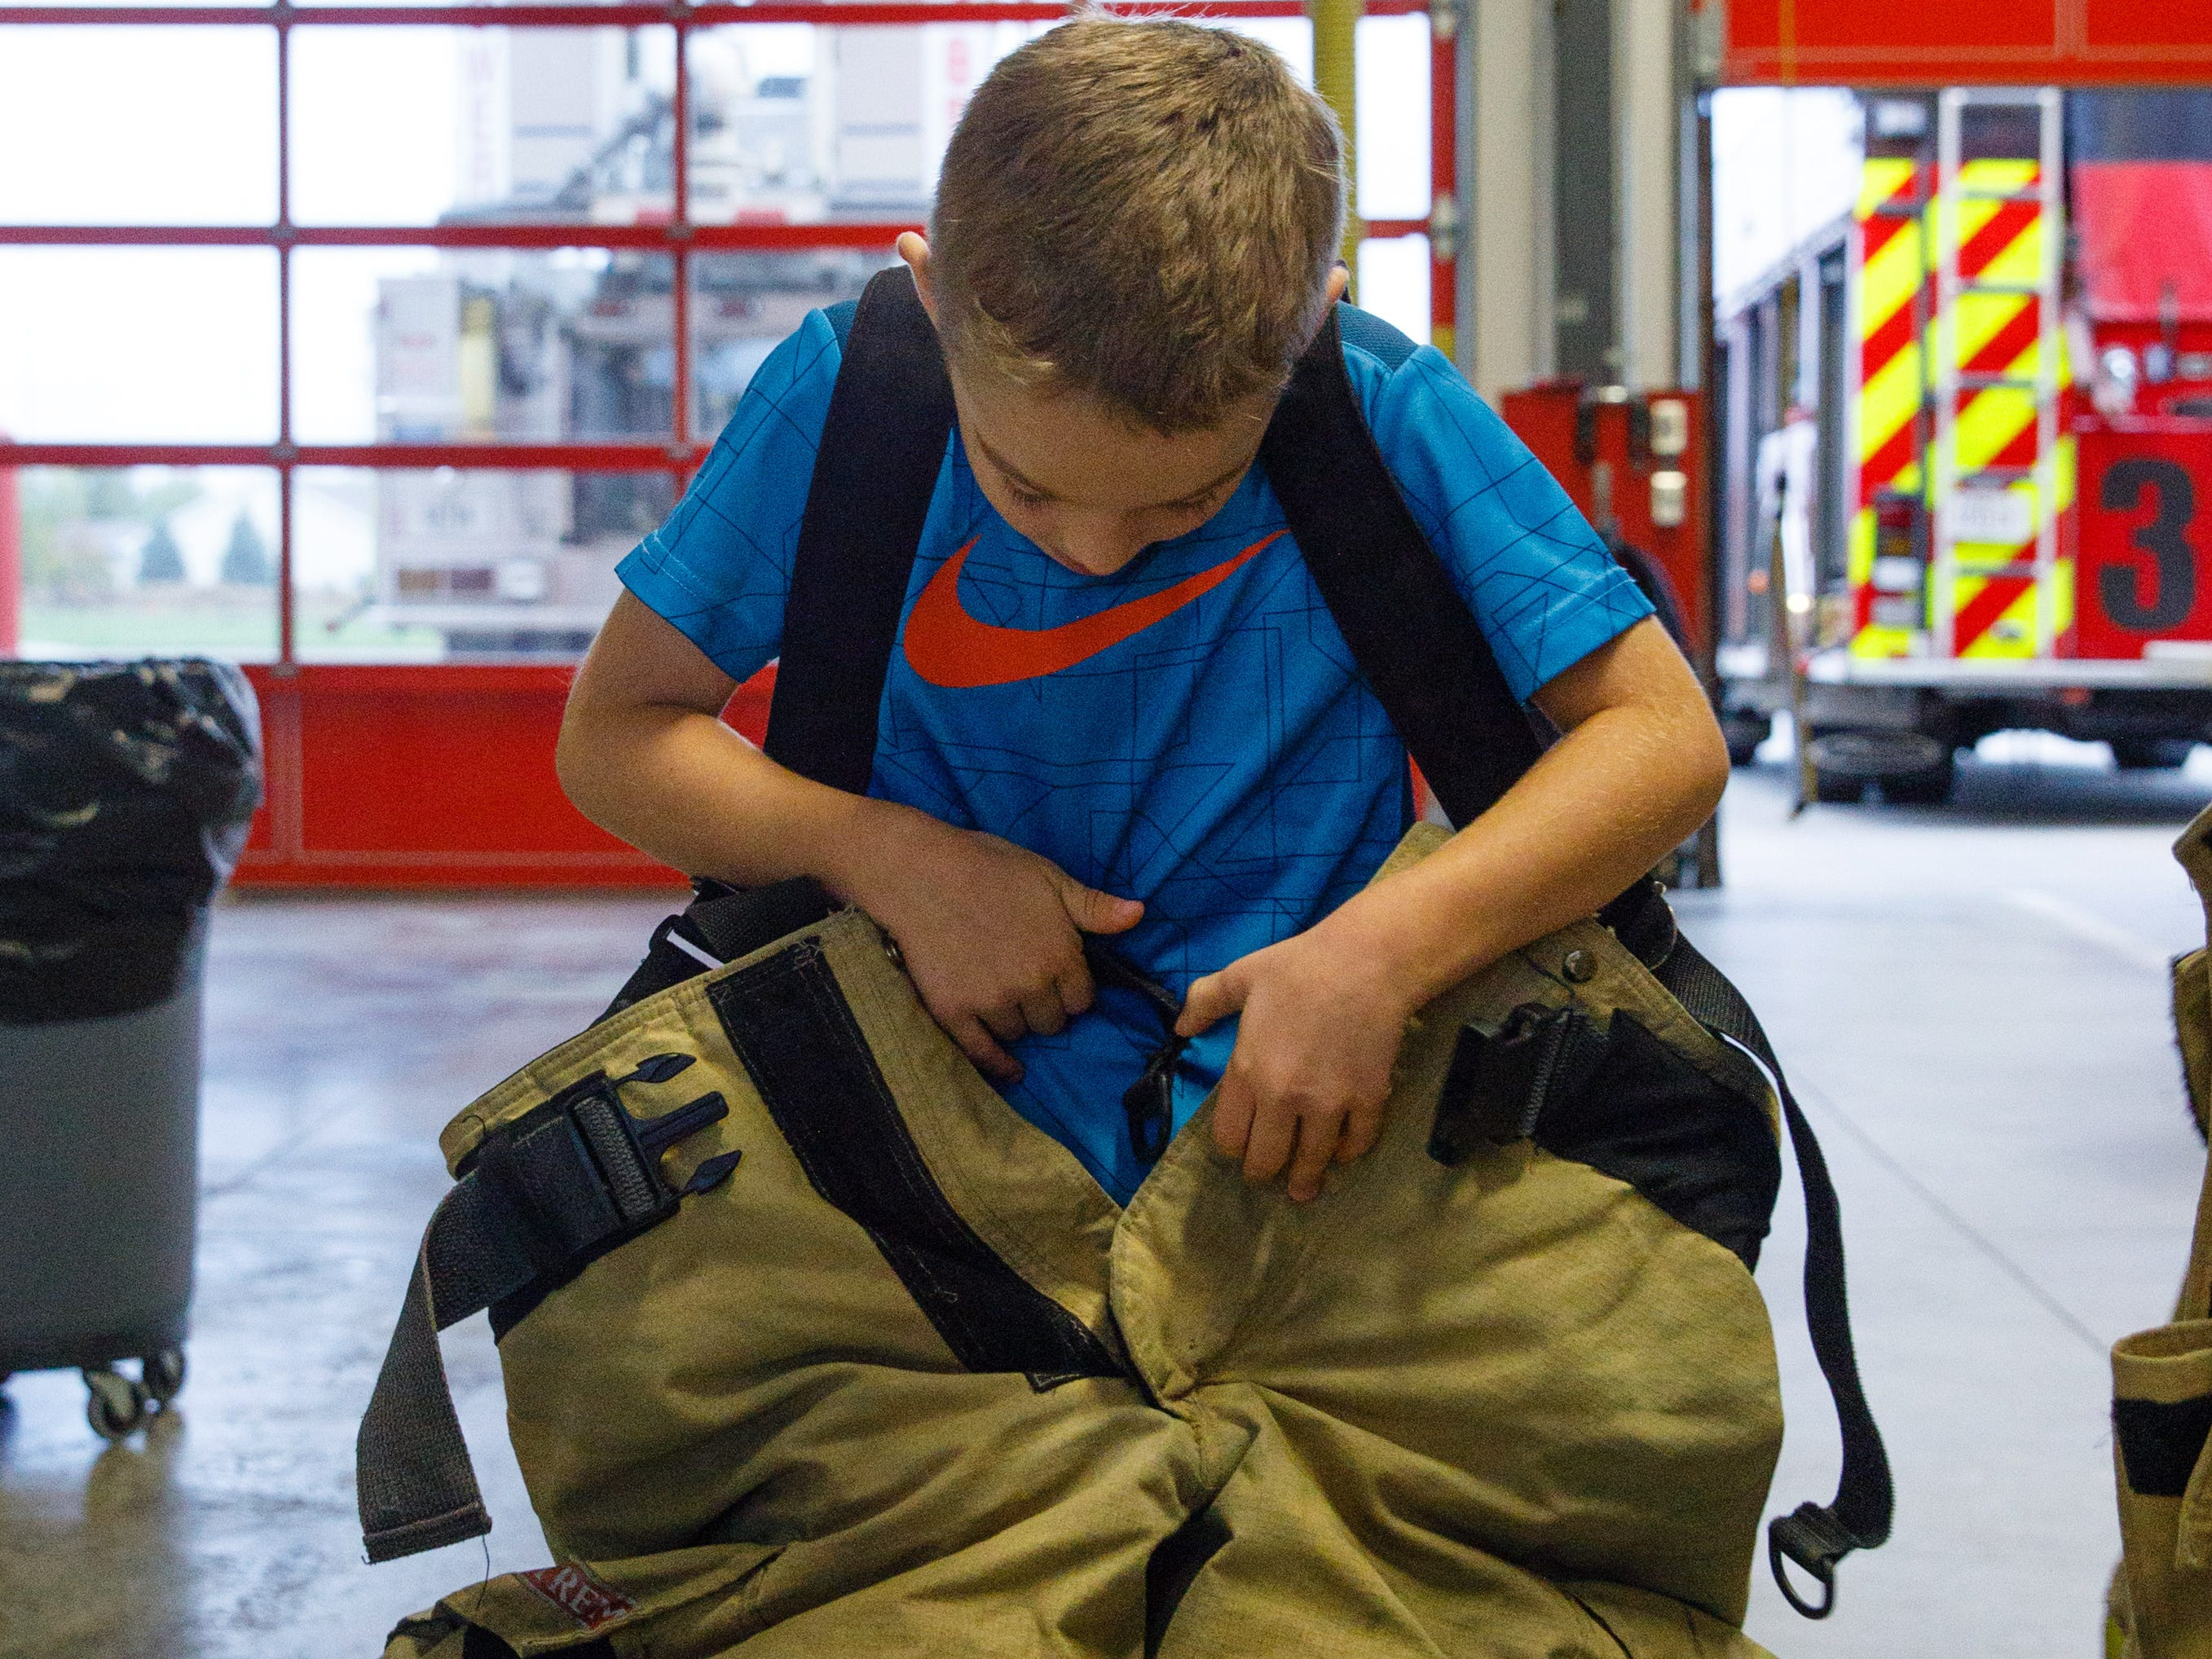 Wyatt Puffer, 6, of Des Moines, tries on firefighter protective equipment Wednesday, Oct. 10, 2018, during the Johnston-Grimes Metropolitan Fire Department's annual Fire Prevention Week Open House at the 62nd Avenue Fire Station in Johnston.